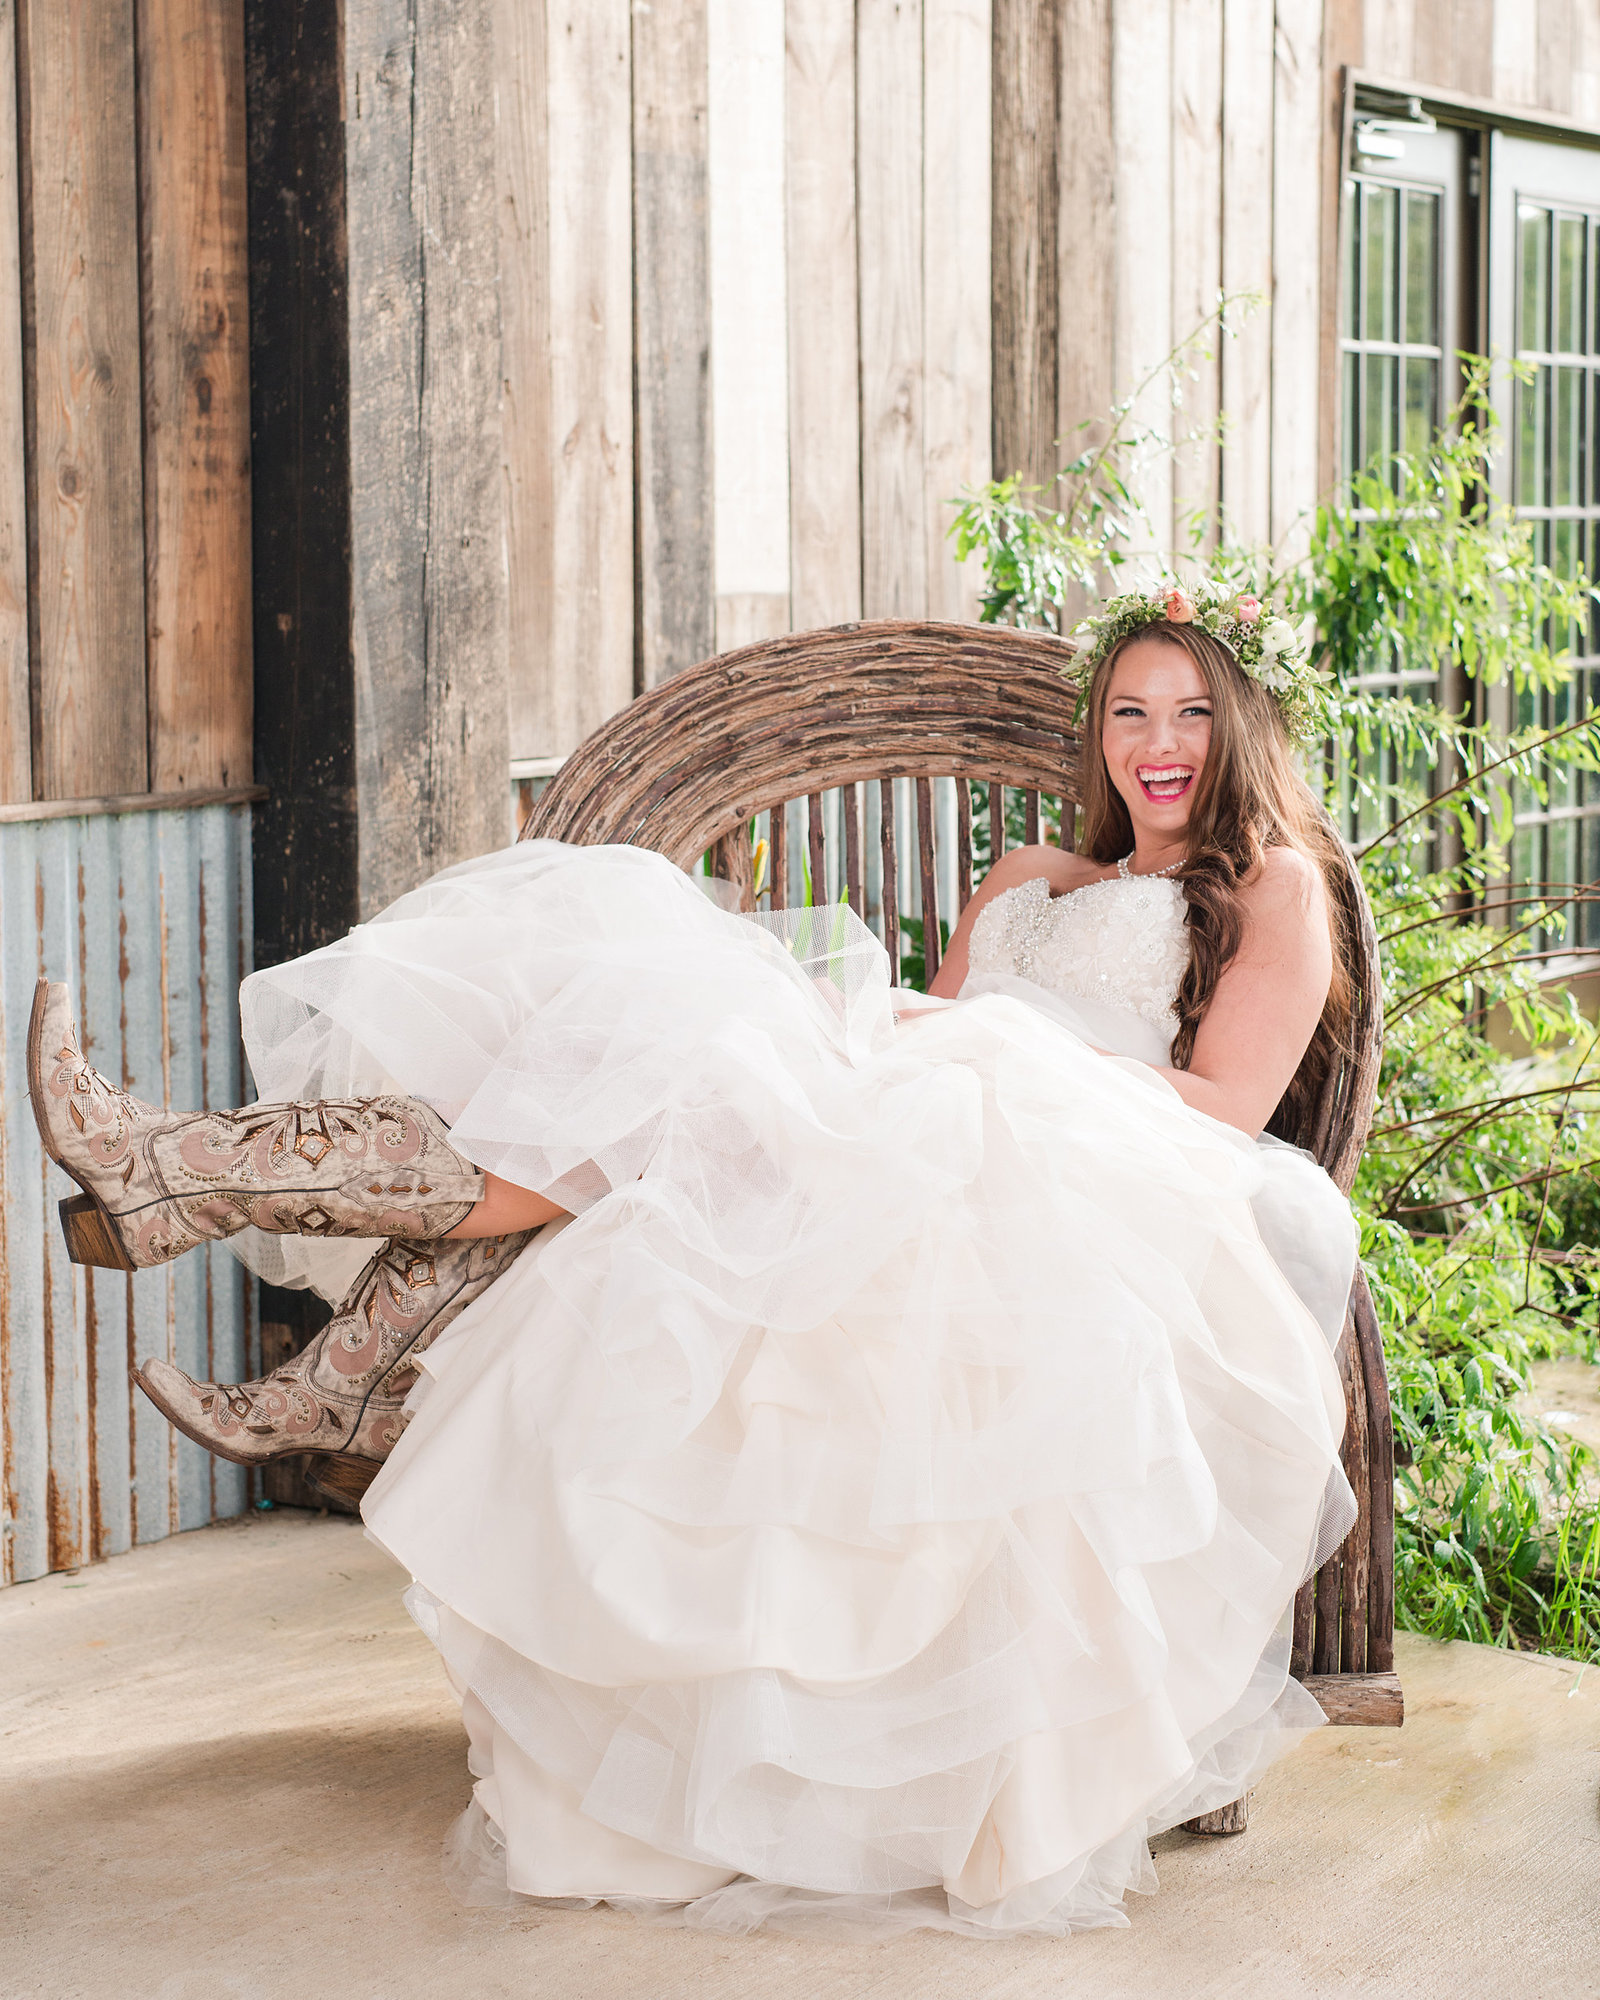 Bride lounges in woven chair of the Creek Haus in Dripping Springs, Texas